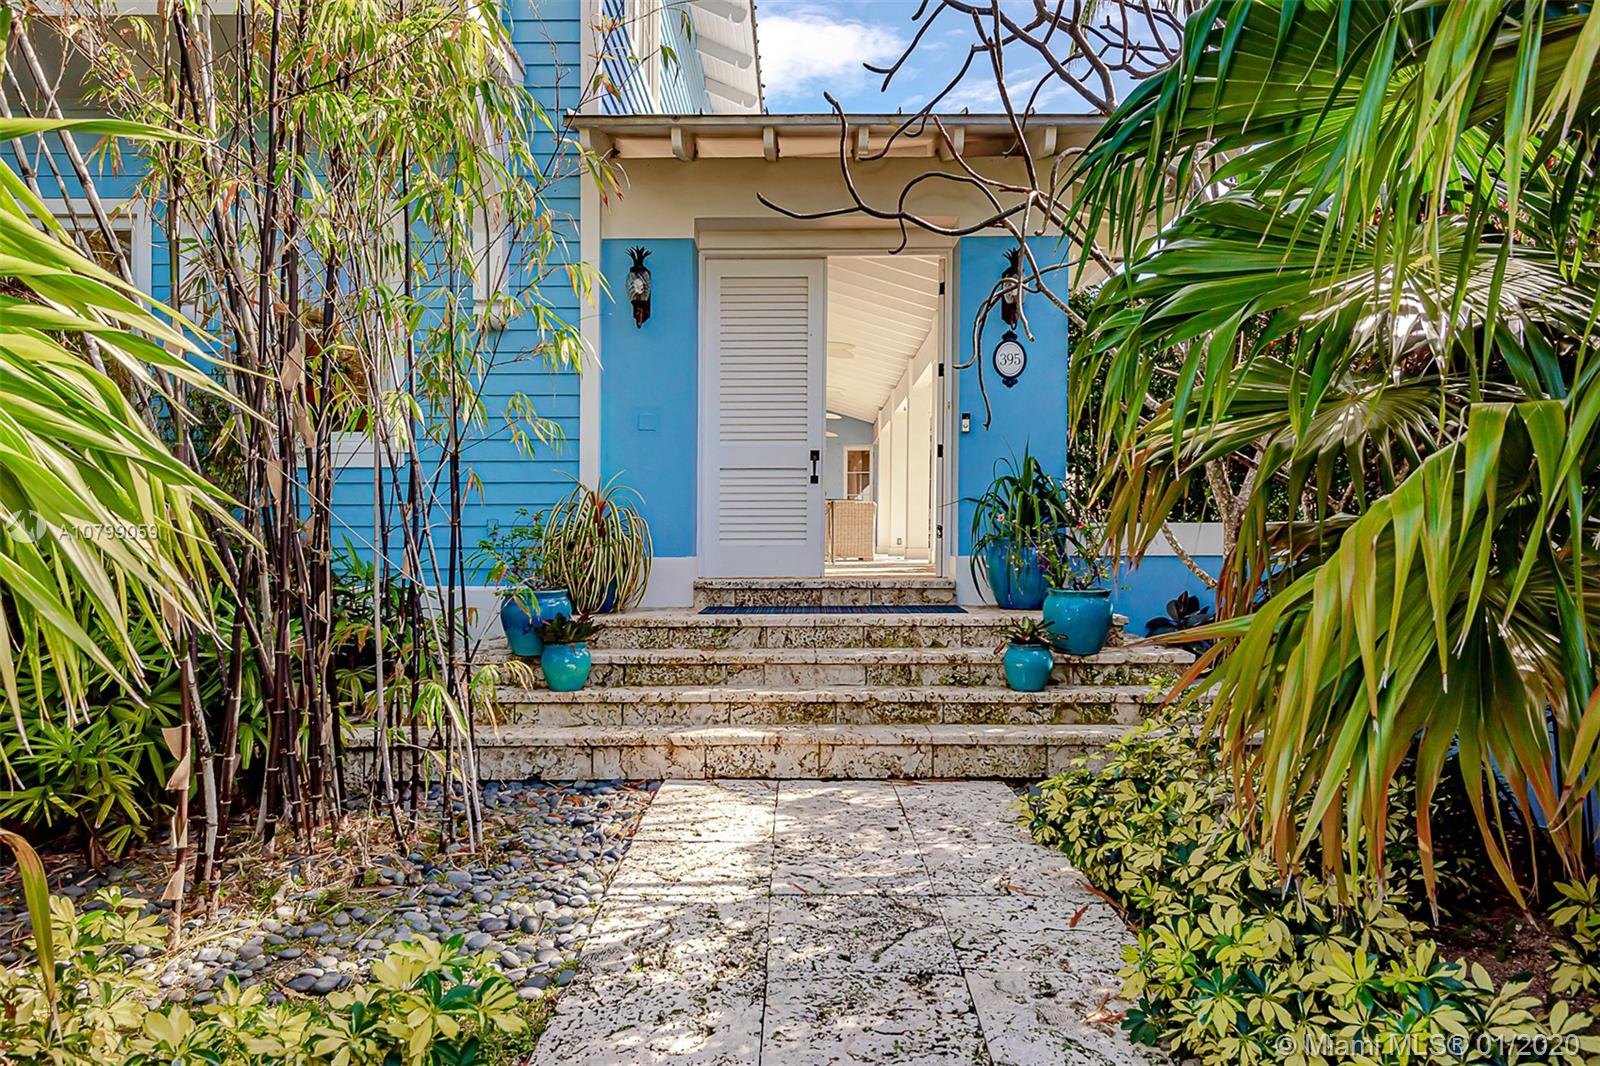 395 Gulf Rd, Key Biscayne, Florida 33149, 5 Bedrooms Bedrooms, ,5 BathroomsBathrooms,Residential,For Sale,395 Gulf Rd,A10799059